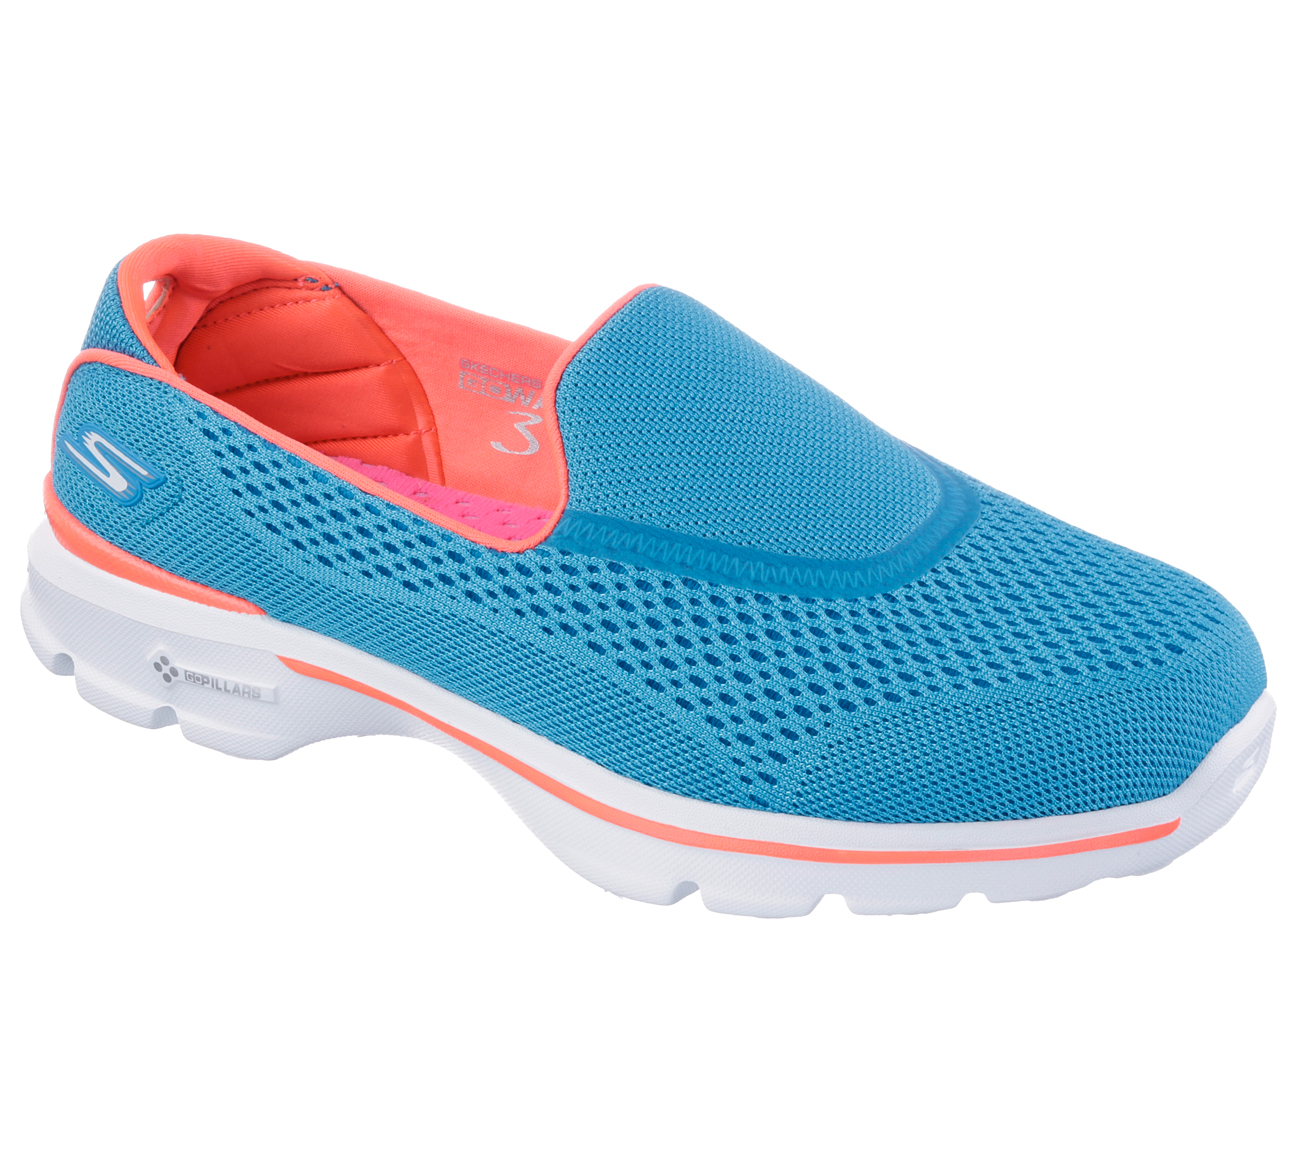 Asics Running Shoes Wide Width Womens